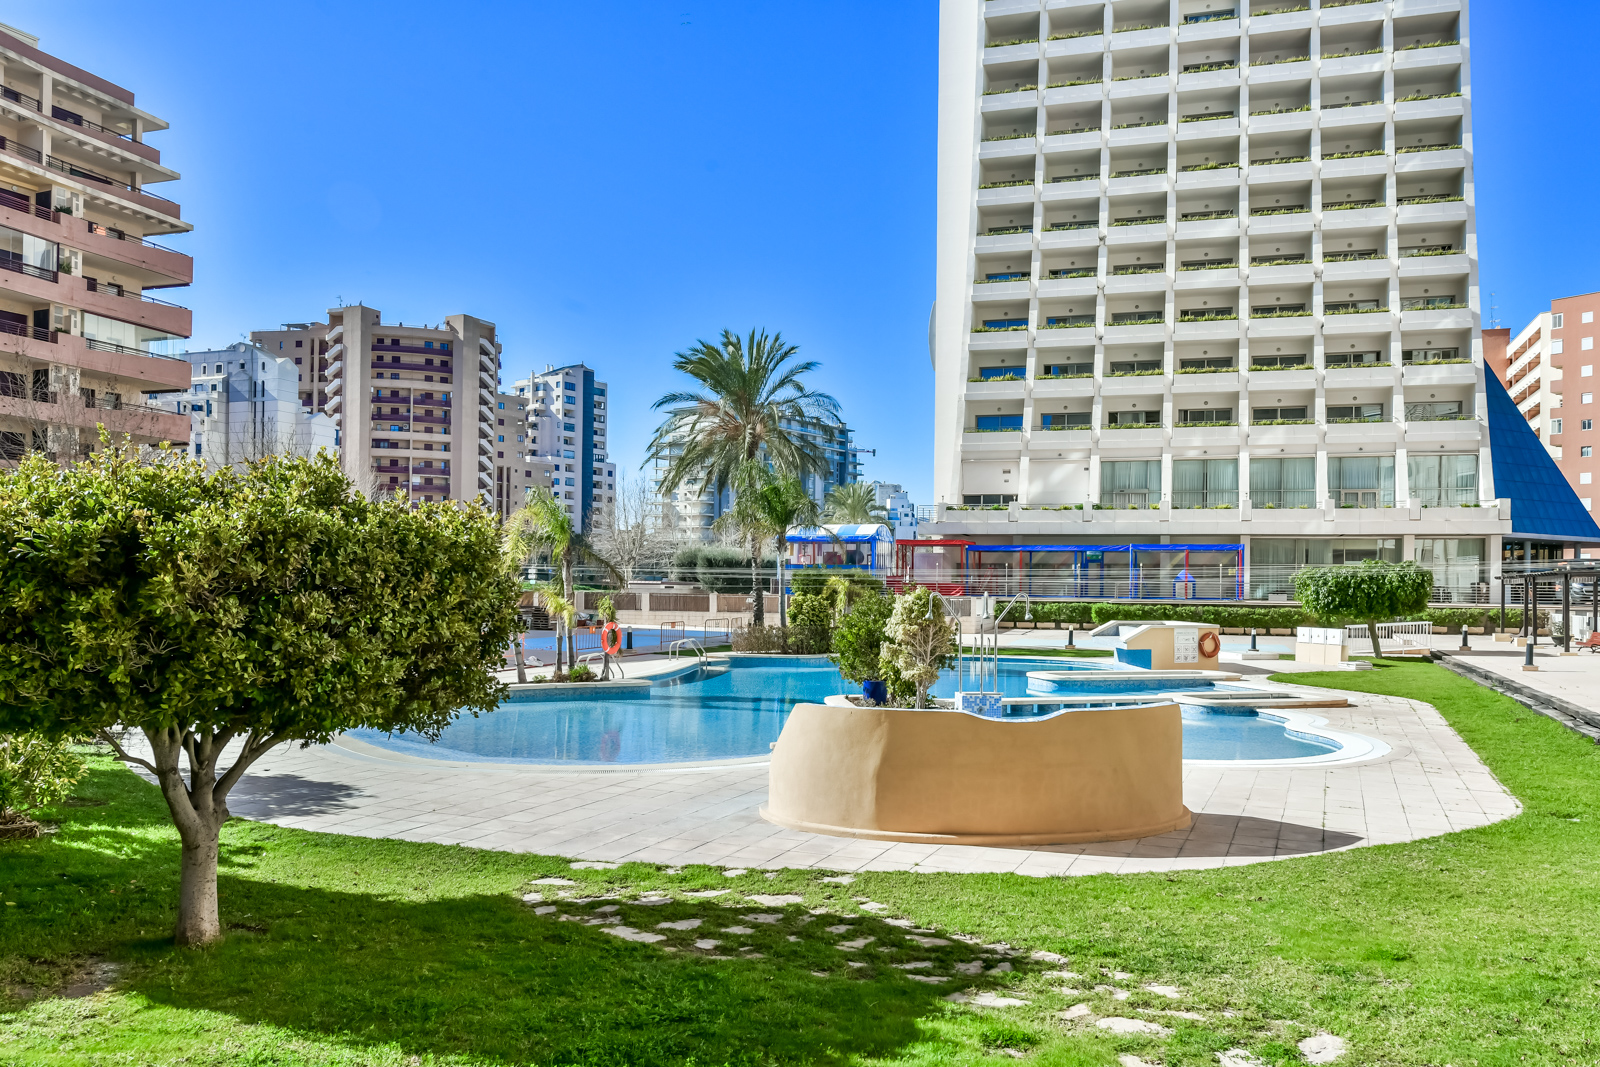 Apartamento Apolo XVI 2 4 19, Apartment in Calpe, on the Costa Blanca, Spain  with communal pool for 4 persons.....